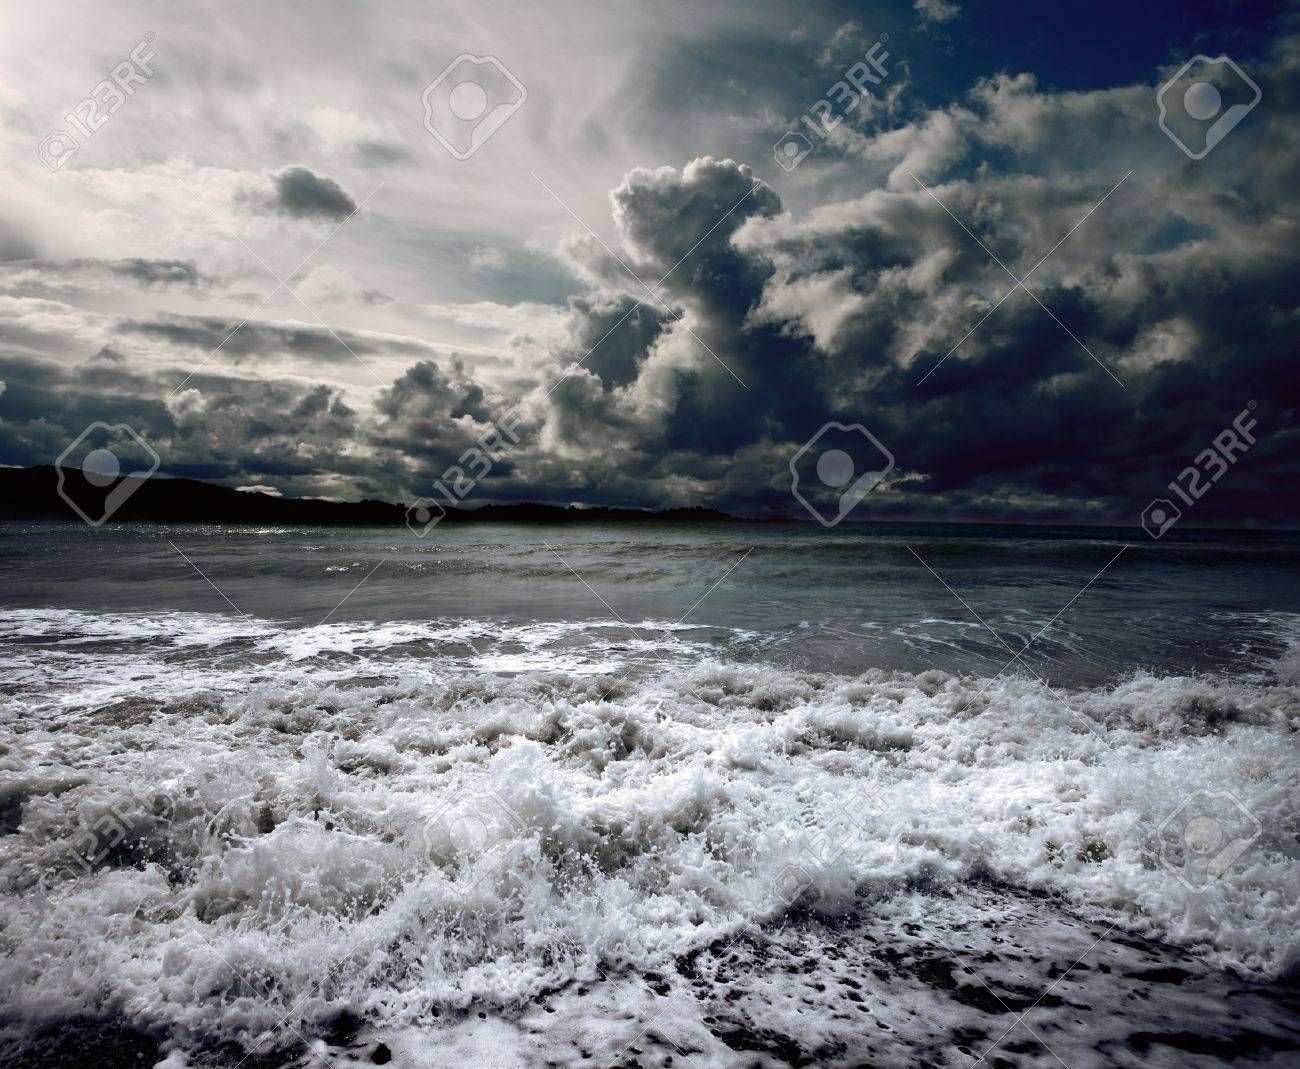 Background ocean storm with waves and clouds Stock Photo - 9867040